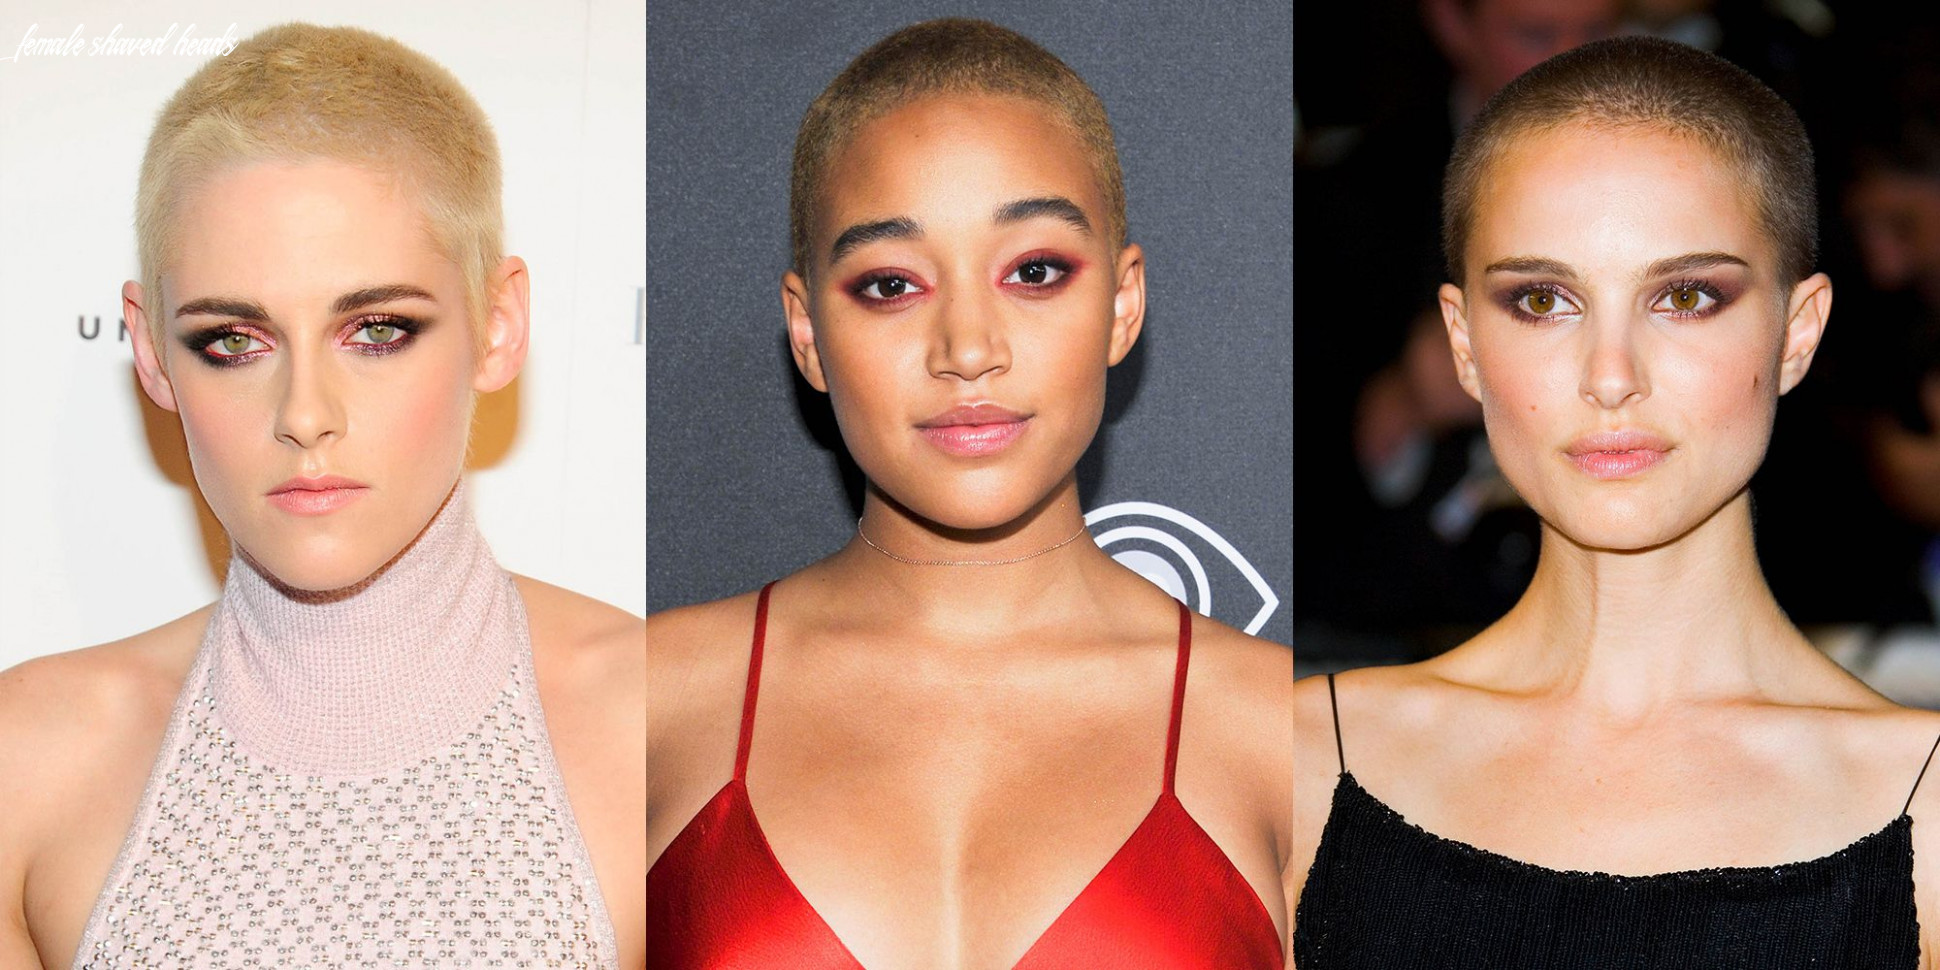 10 women with shaved heads female celebs with buzzcuts female shaved heads